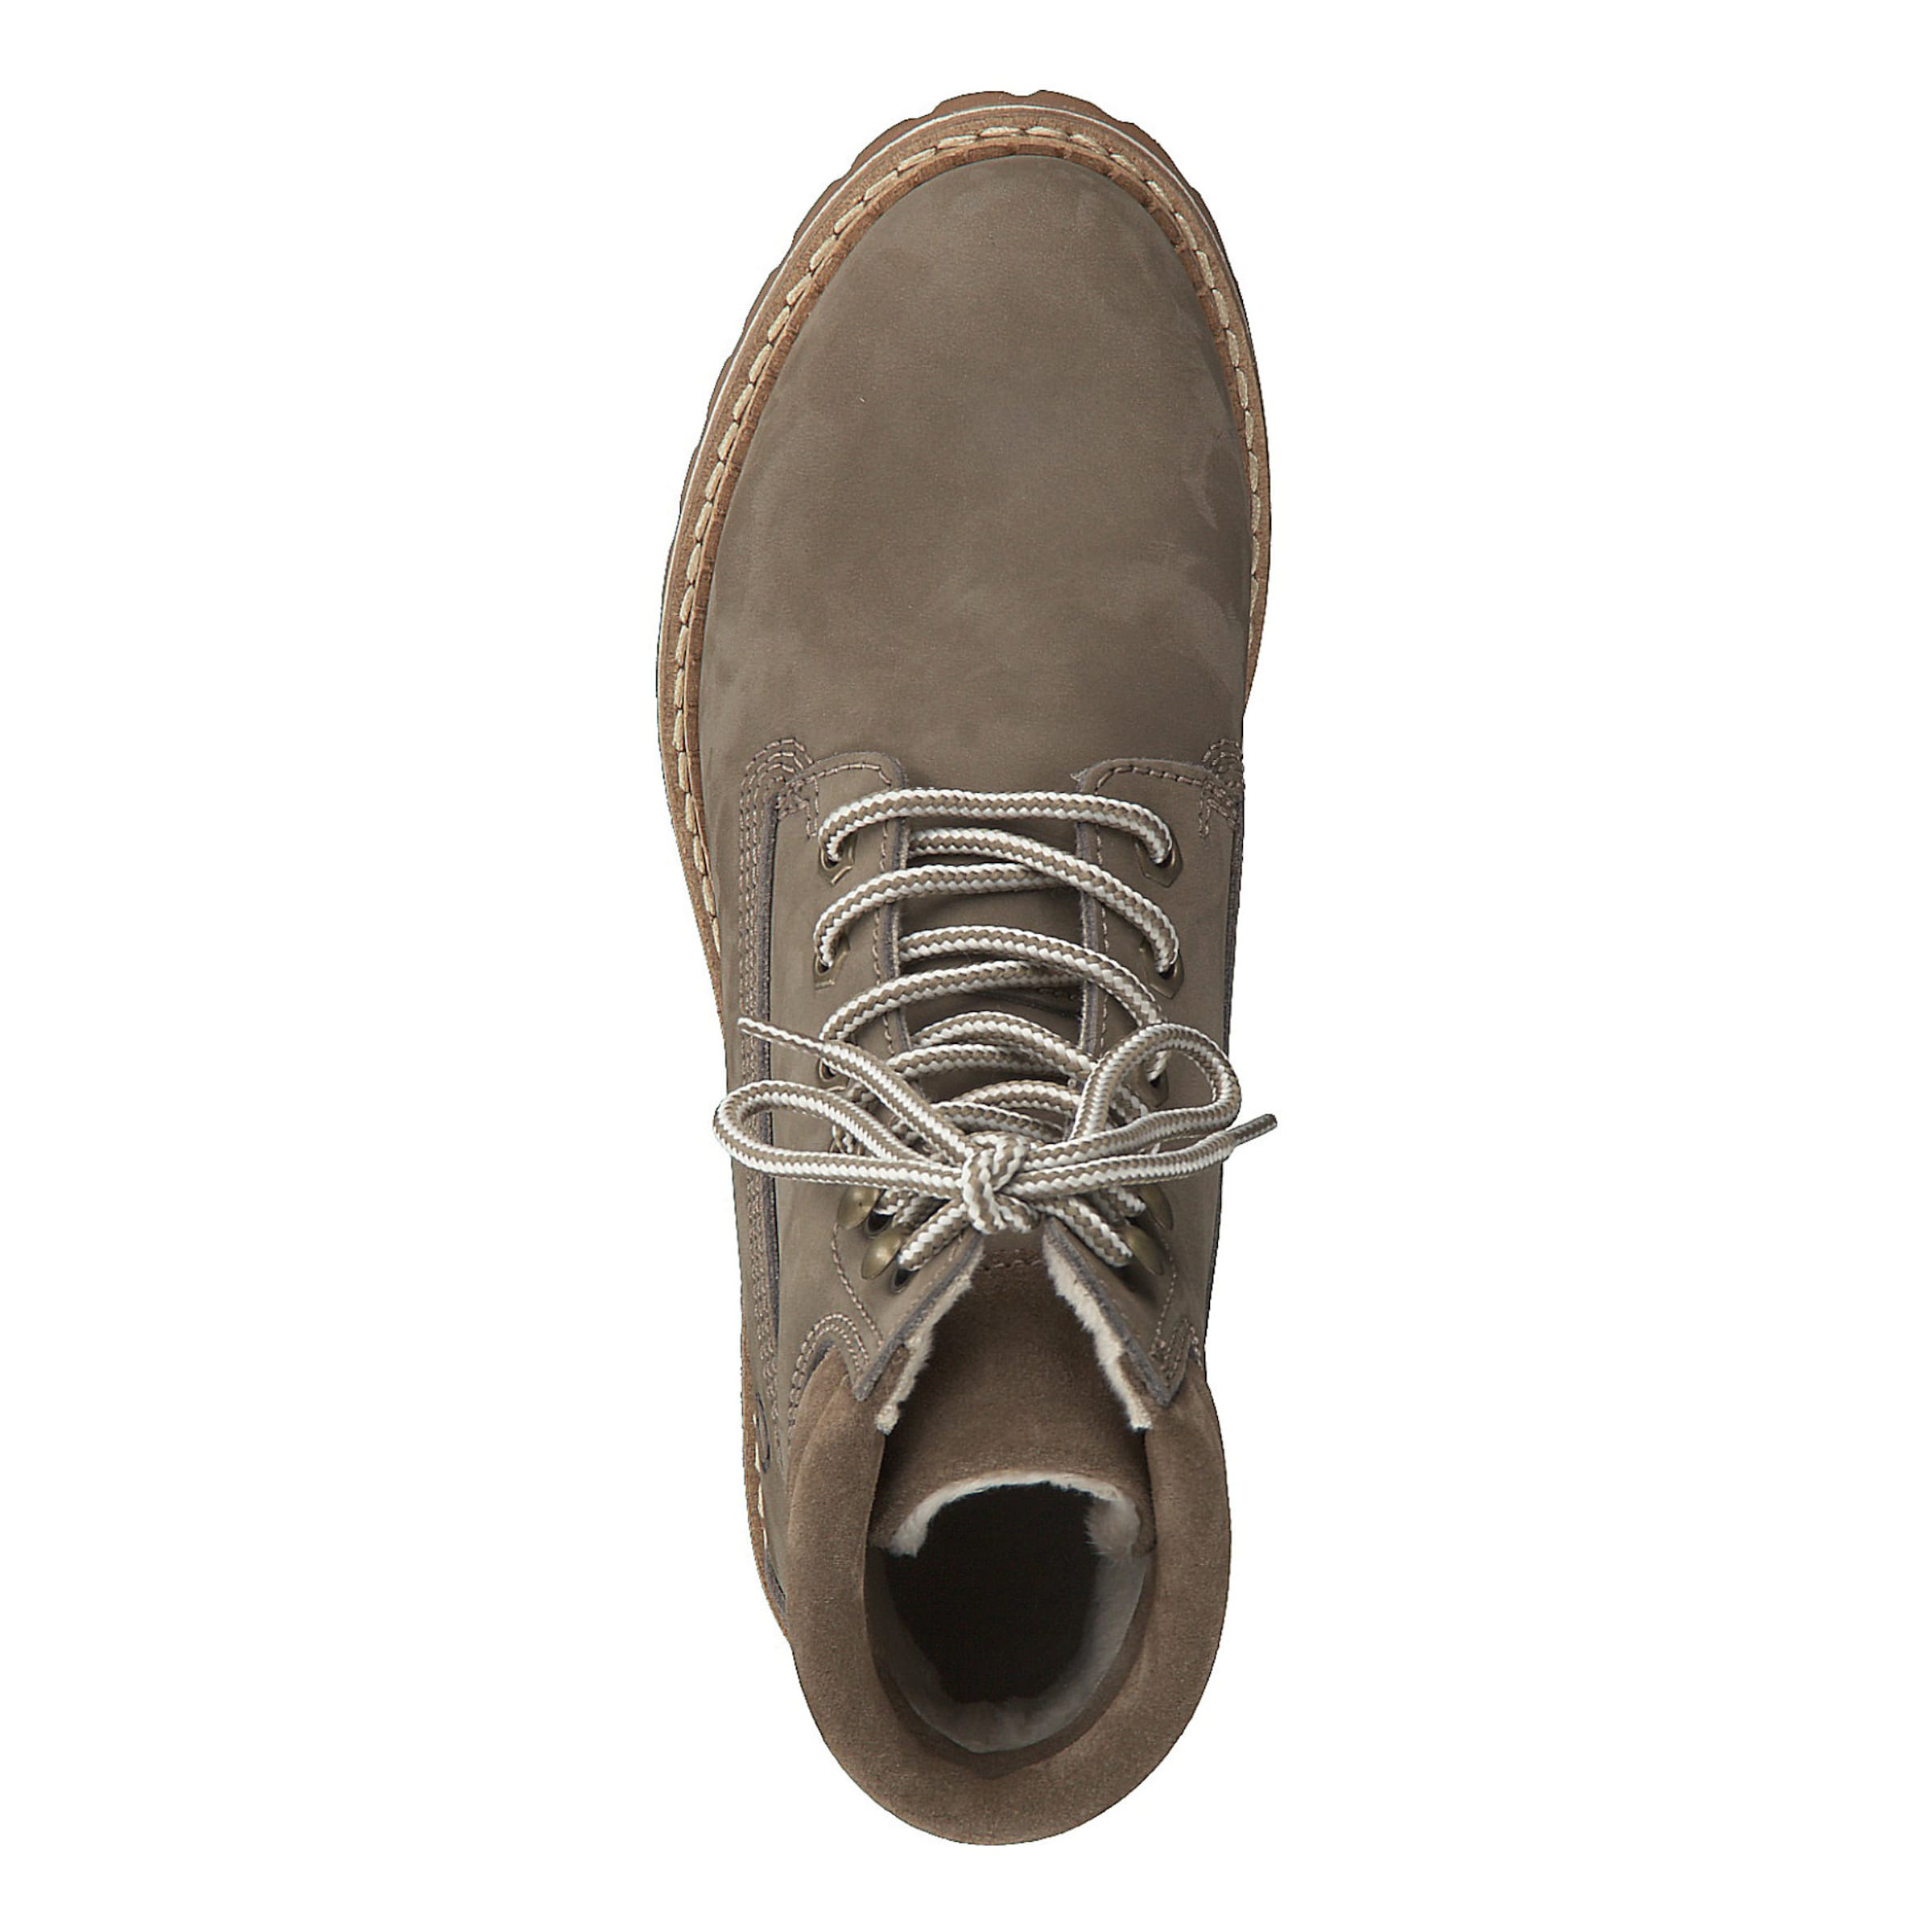 Taupe Tamaris In In Taupe Boots Tamaris Boots rBEdoexQCW